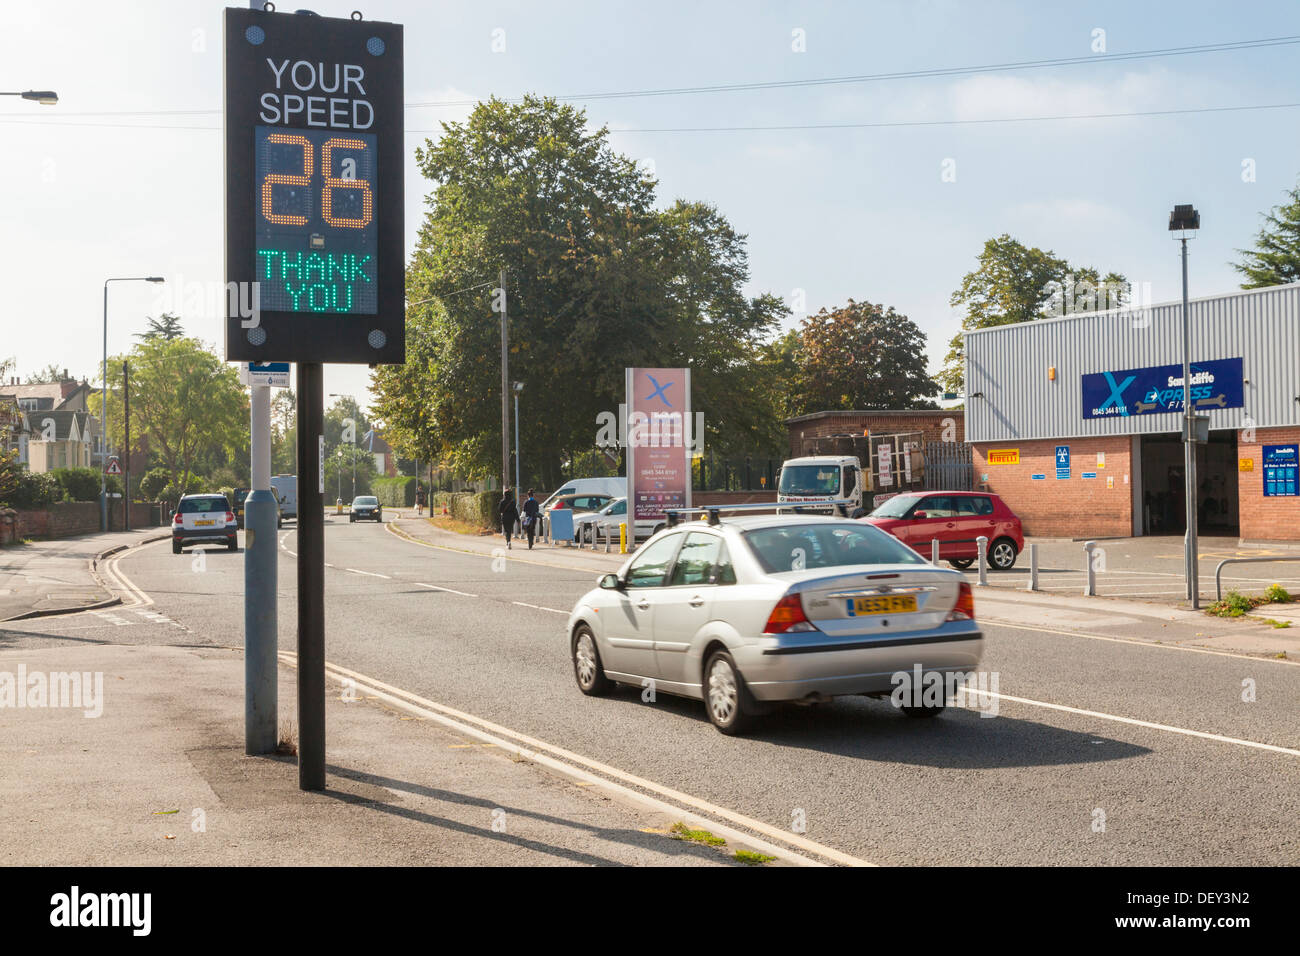 Car within the speed limit as it passes a traffic speed warning indicator, Nottinghamshire, England, UK - Stock Image